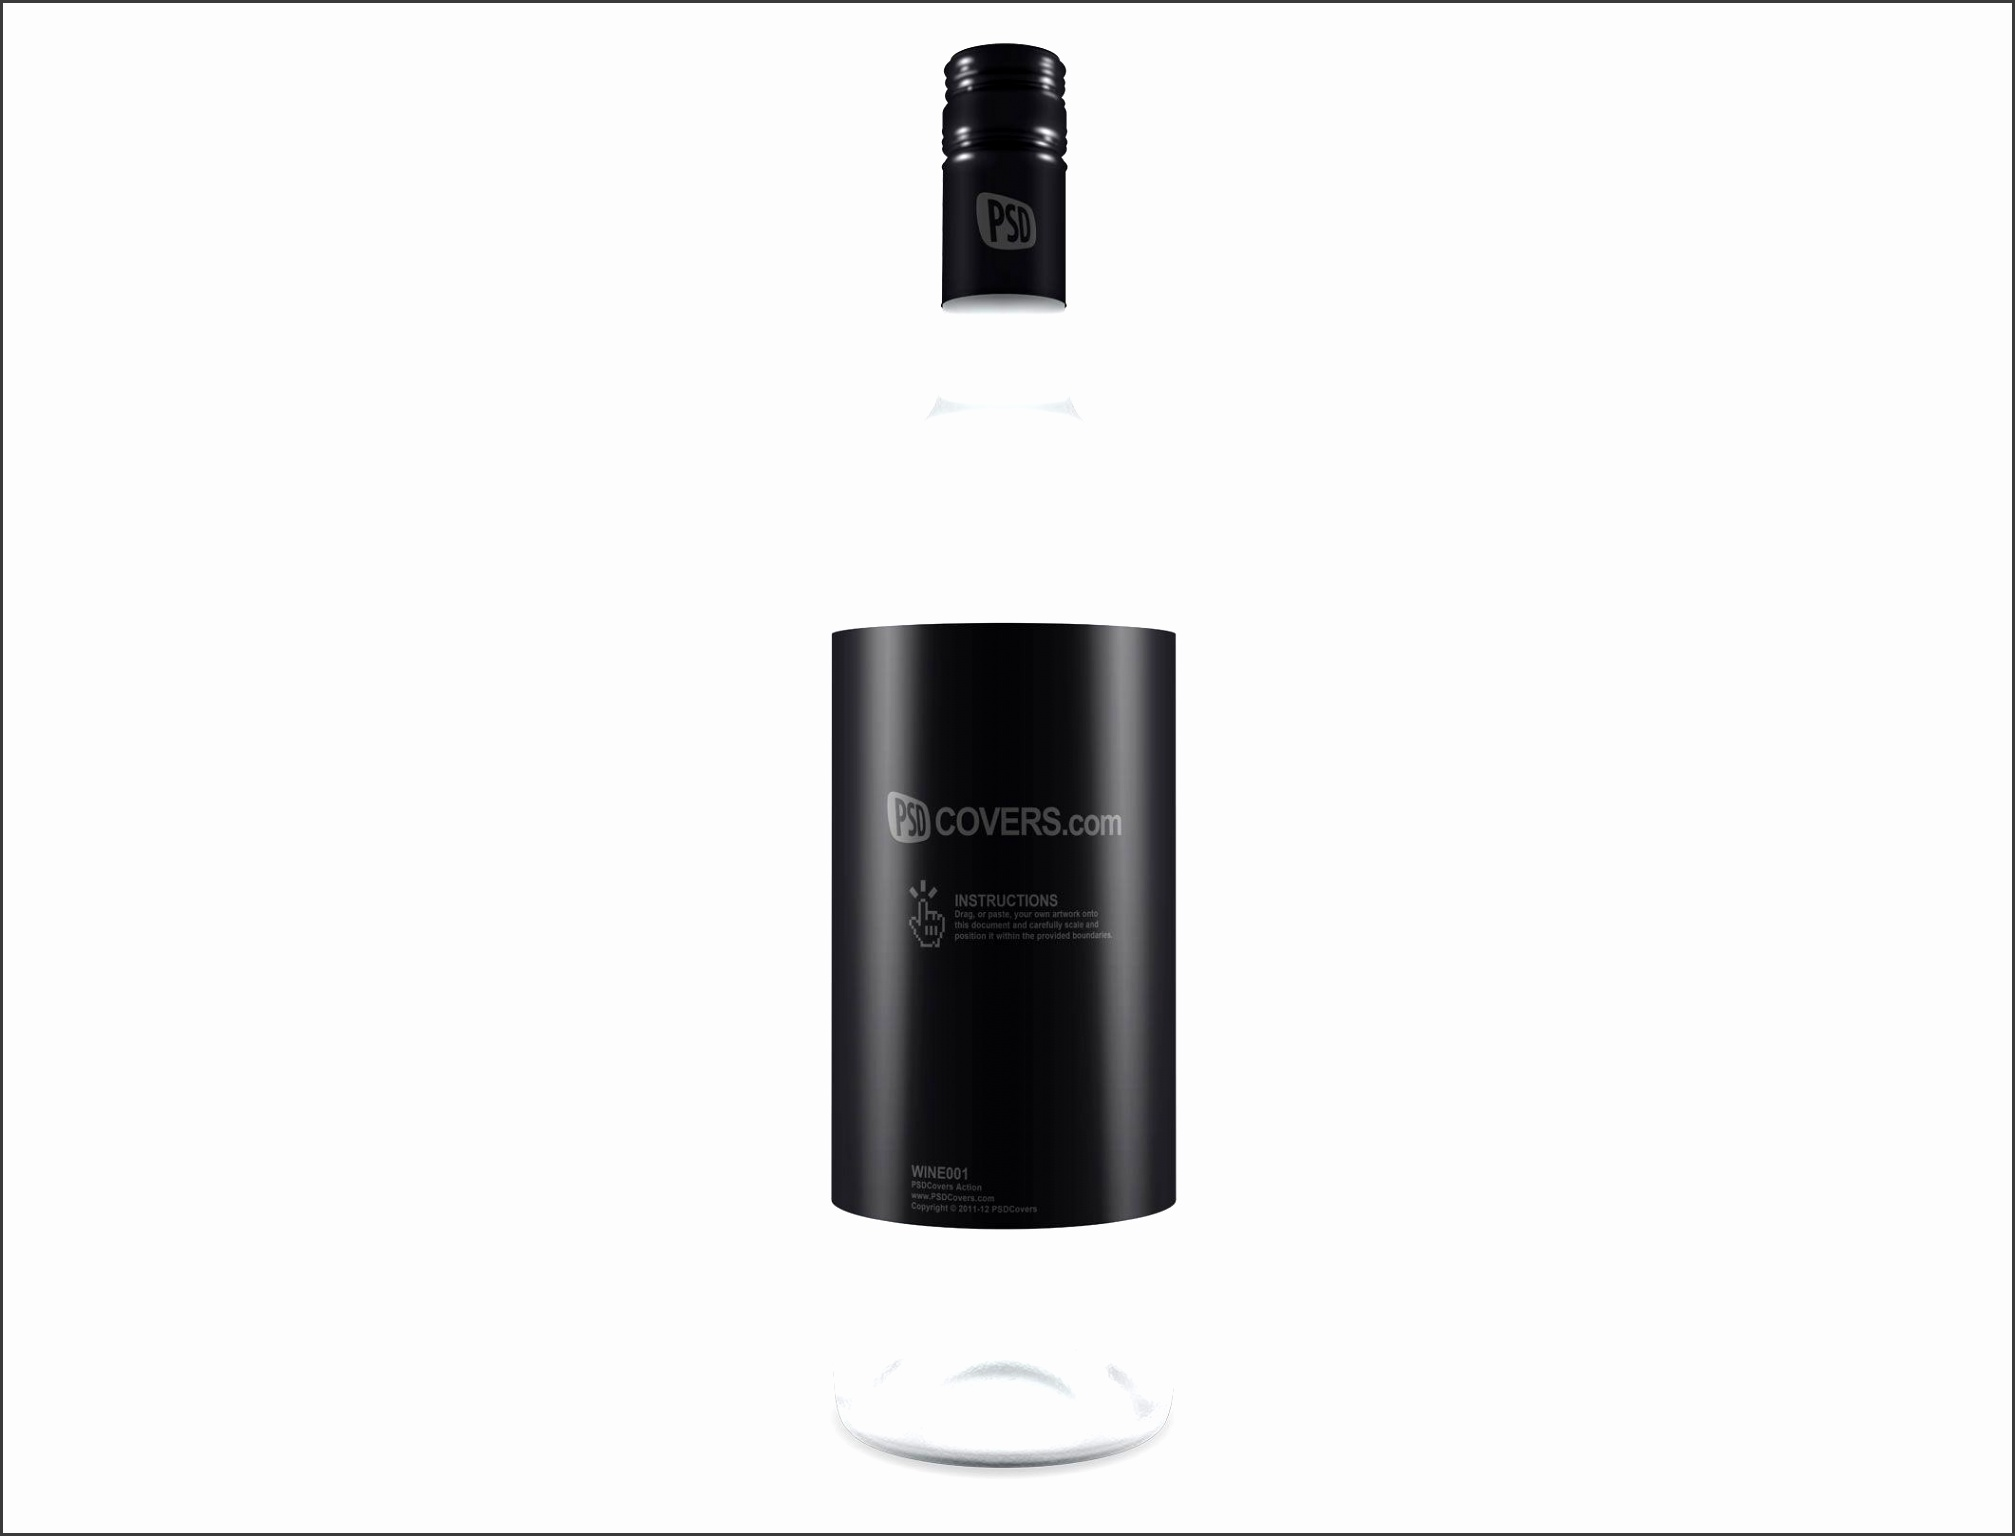 WINE001 is a 1L wine bottle facing directly forward This PSD Mockup Cover Action bottle